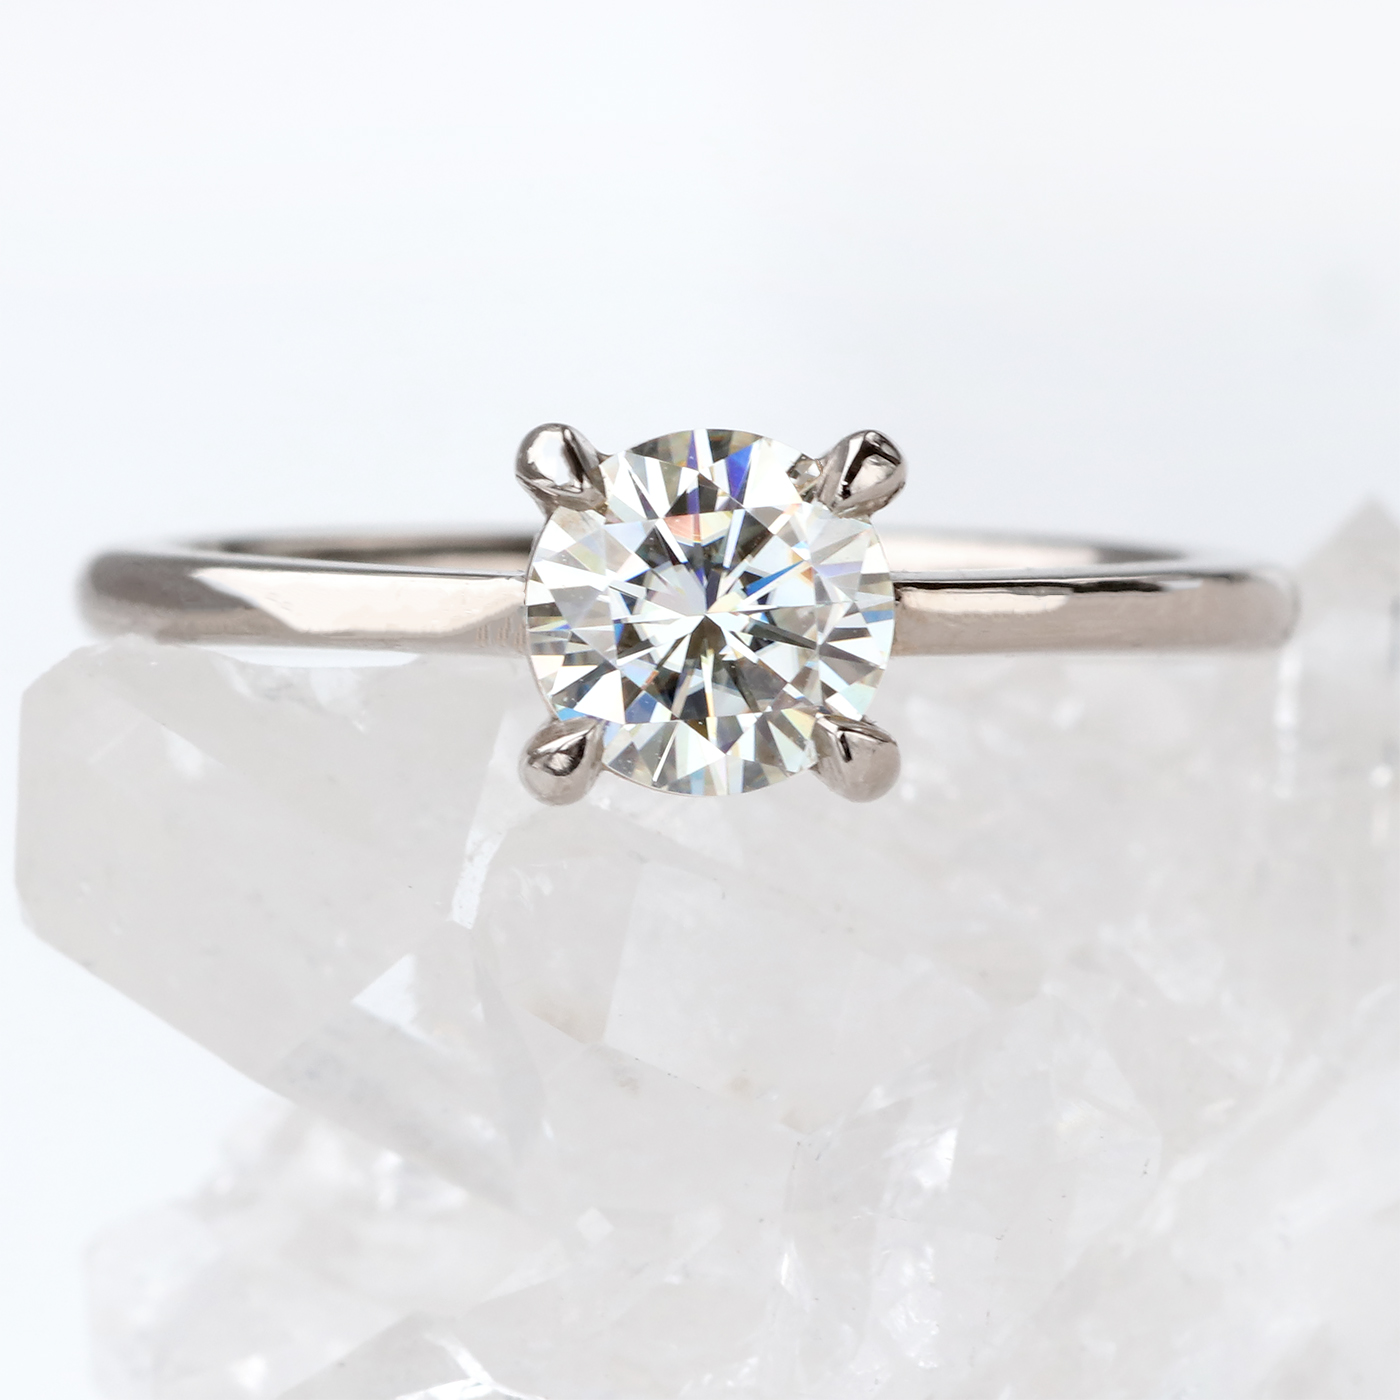 Engagement Rings With Moissanite: Moissanite Solitaire Engagement Ring (18ct Gold Or White